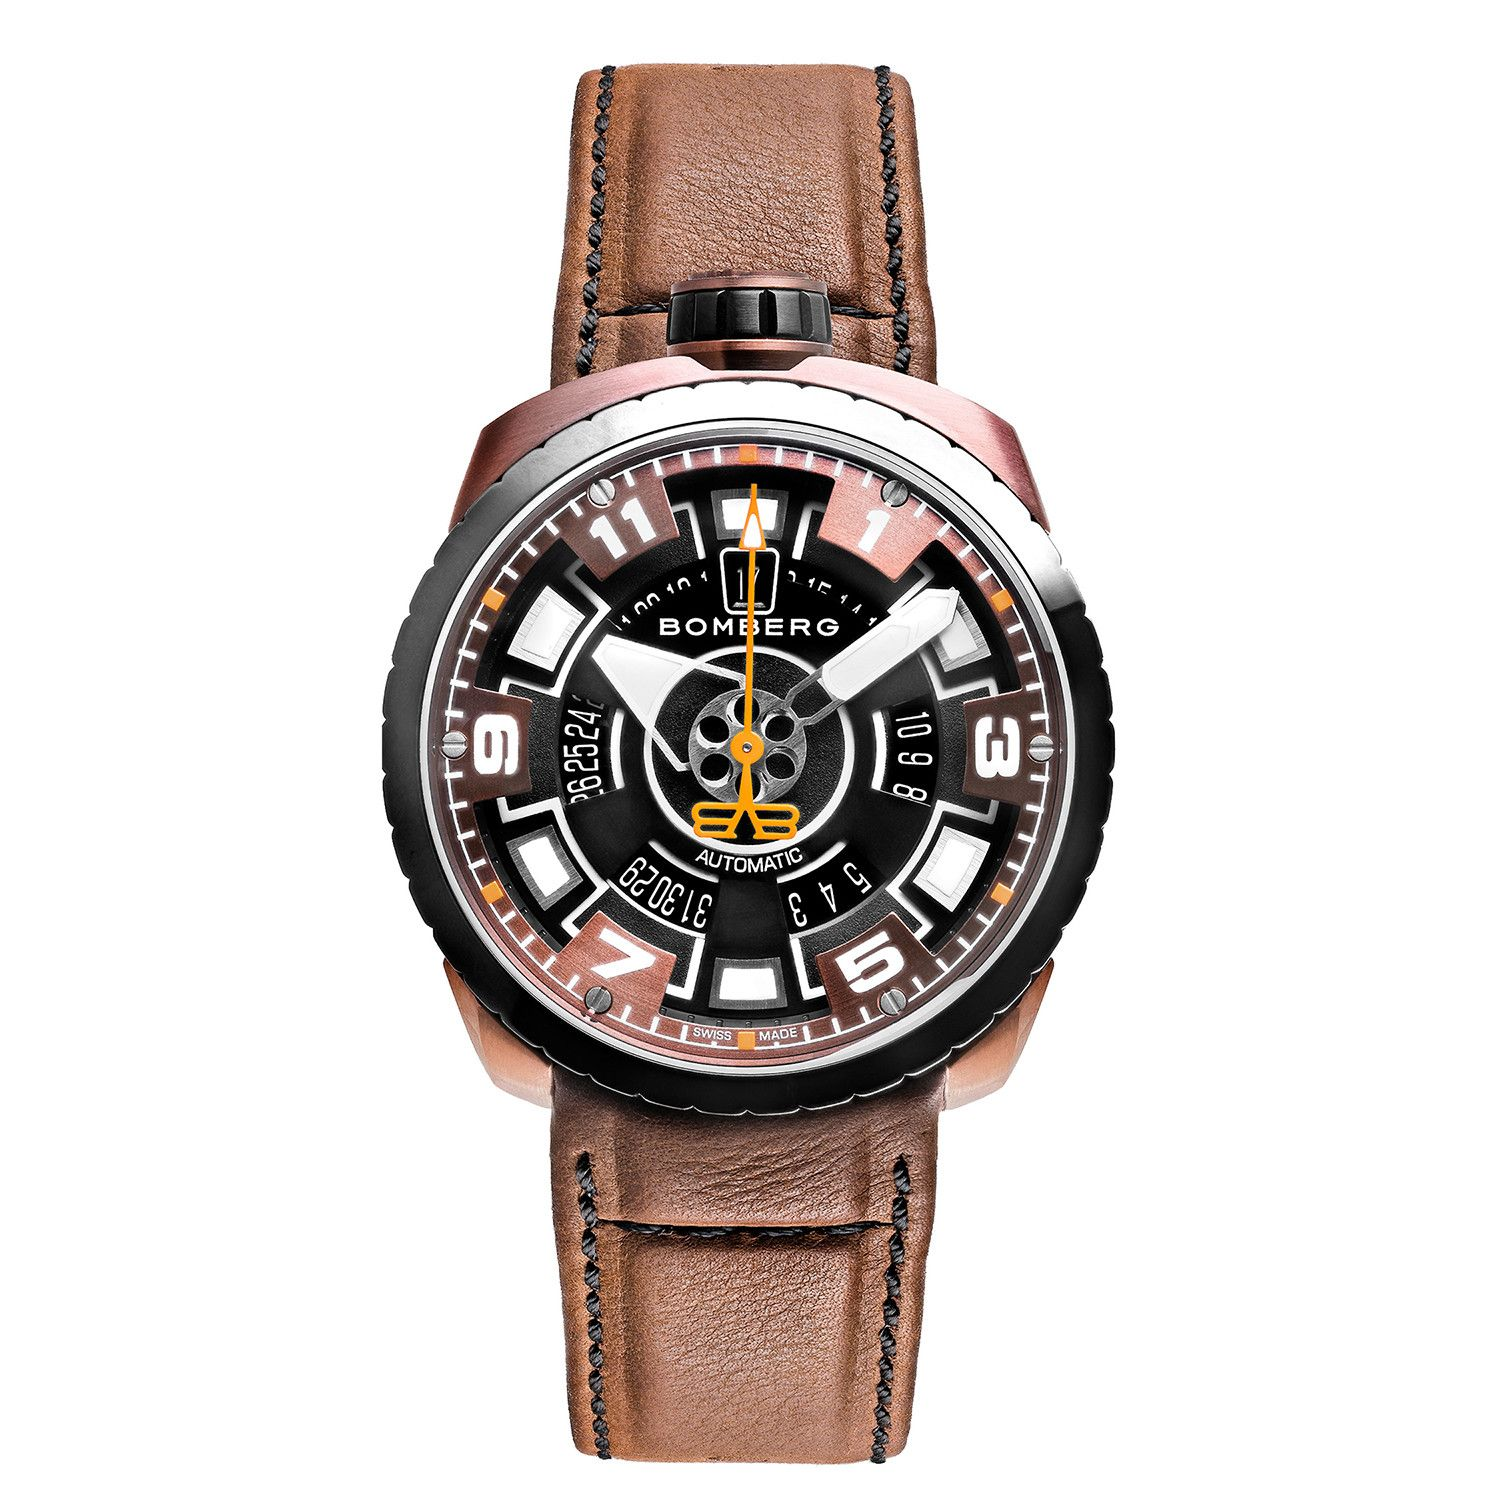 Bomberg BOLT-68 Watch Black and Brown PVD LIMITED EDITION